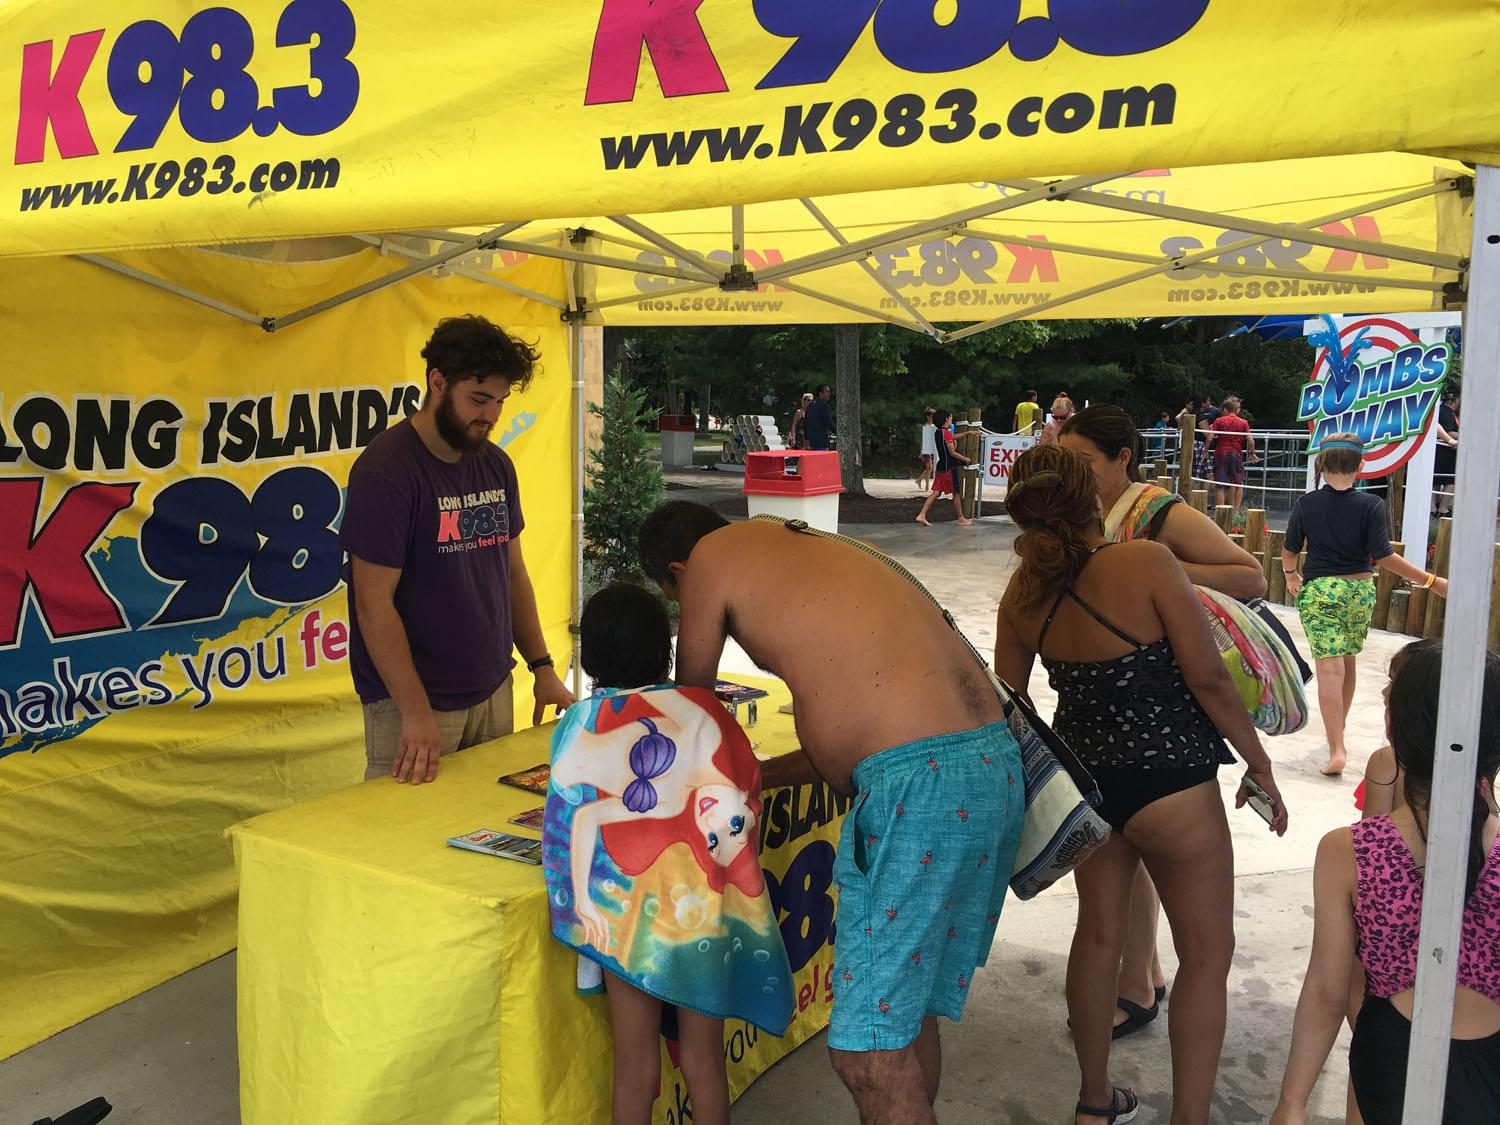 K-98.3 at Splish Splash